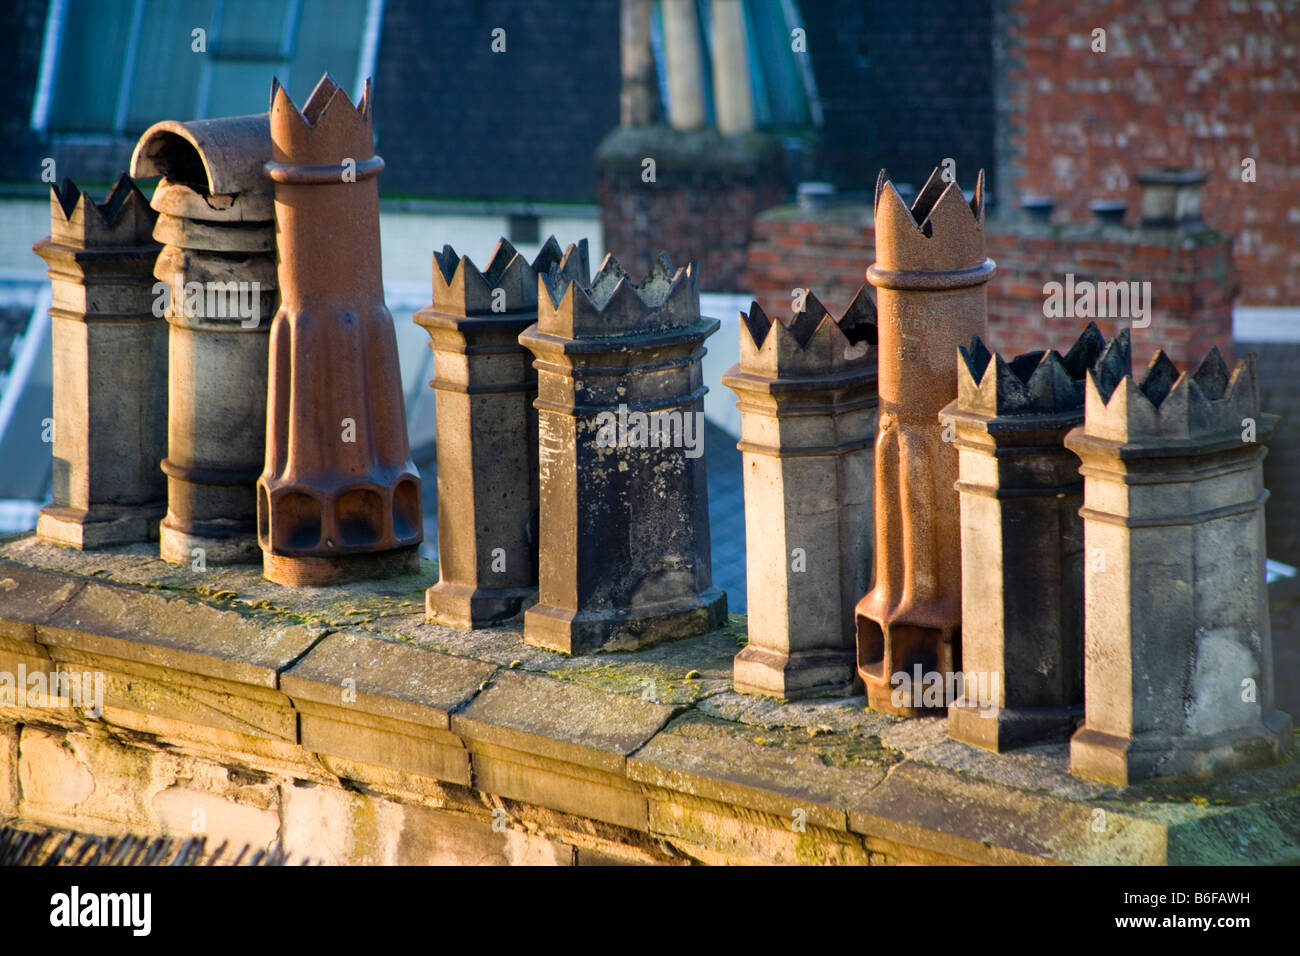 Old chimney pots in Newcastle Upon Tyne - Stock Image